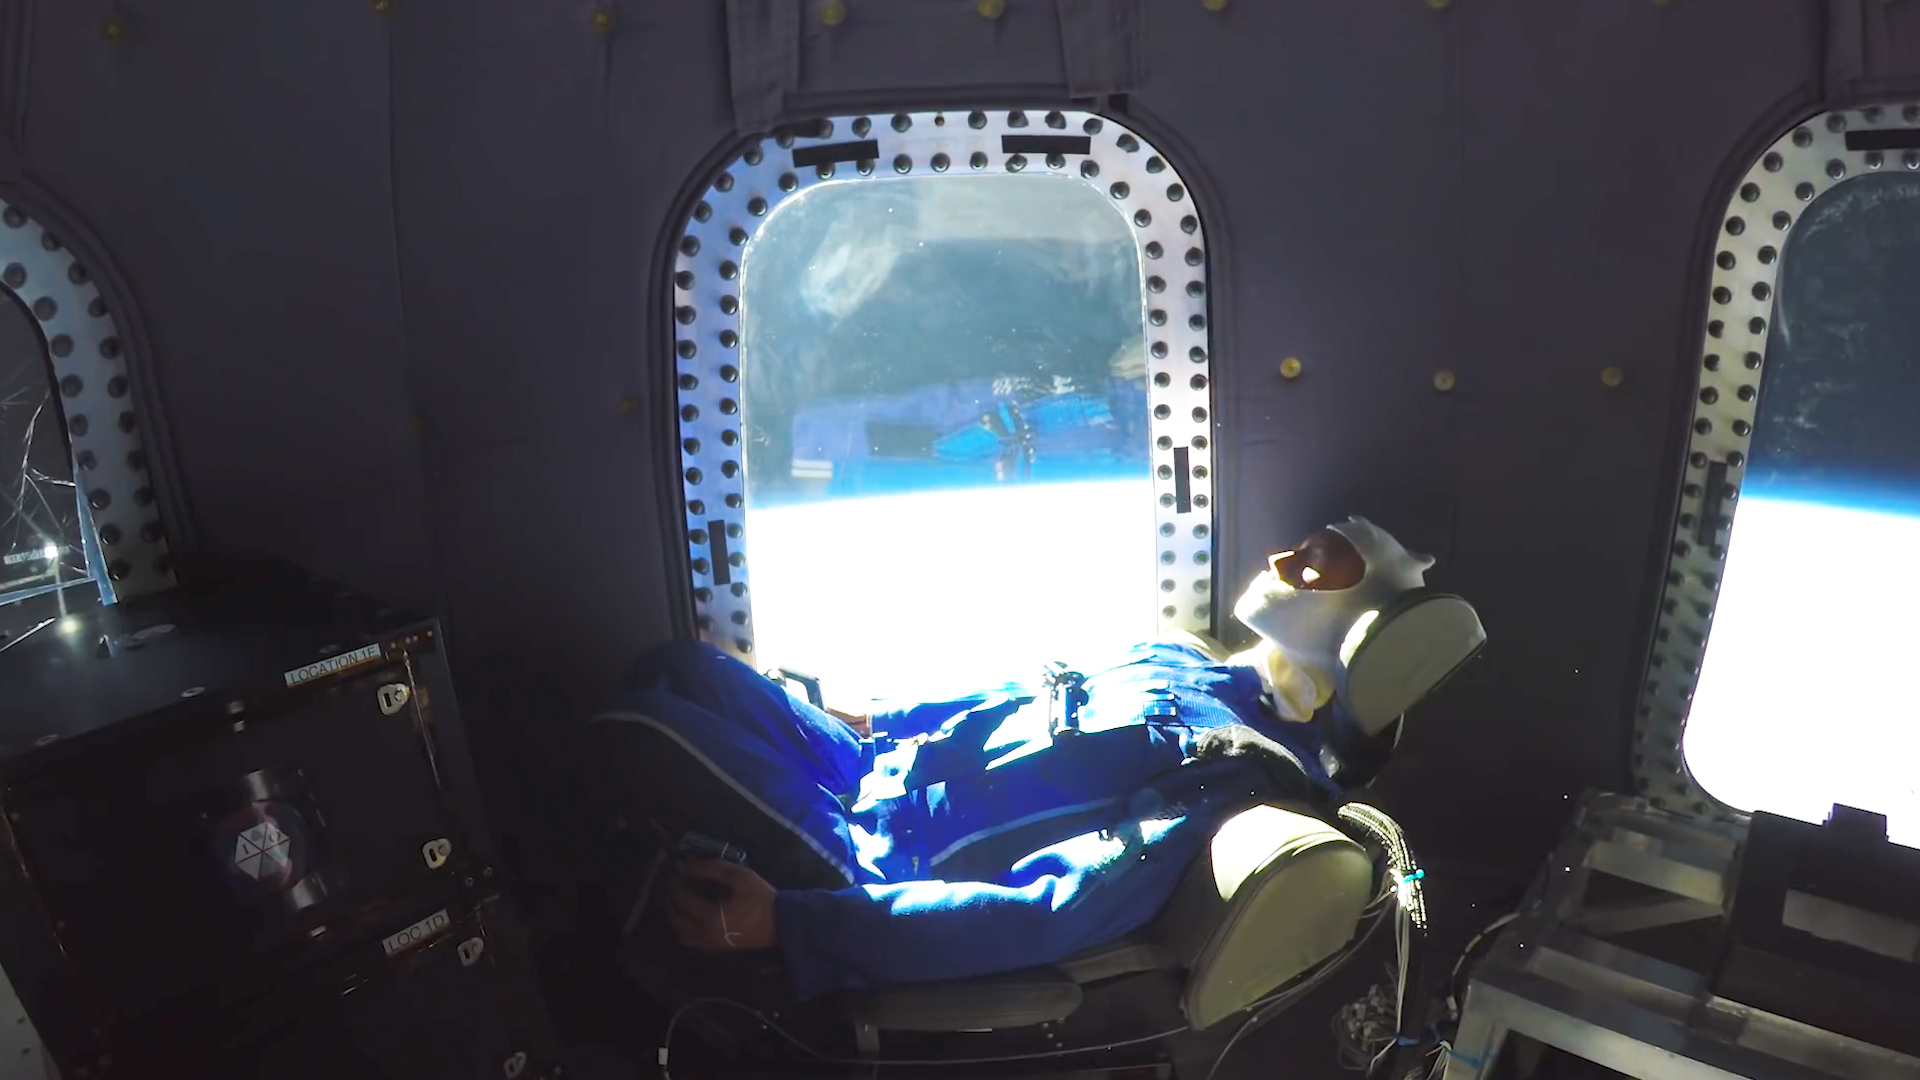 The view from inside Blue Origin's new Crew Capsule, which should be taking tourists to space by early 2019.